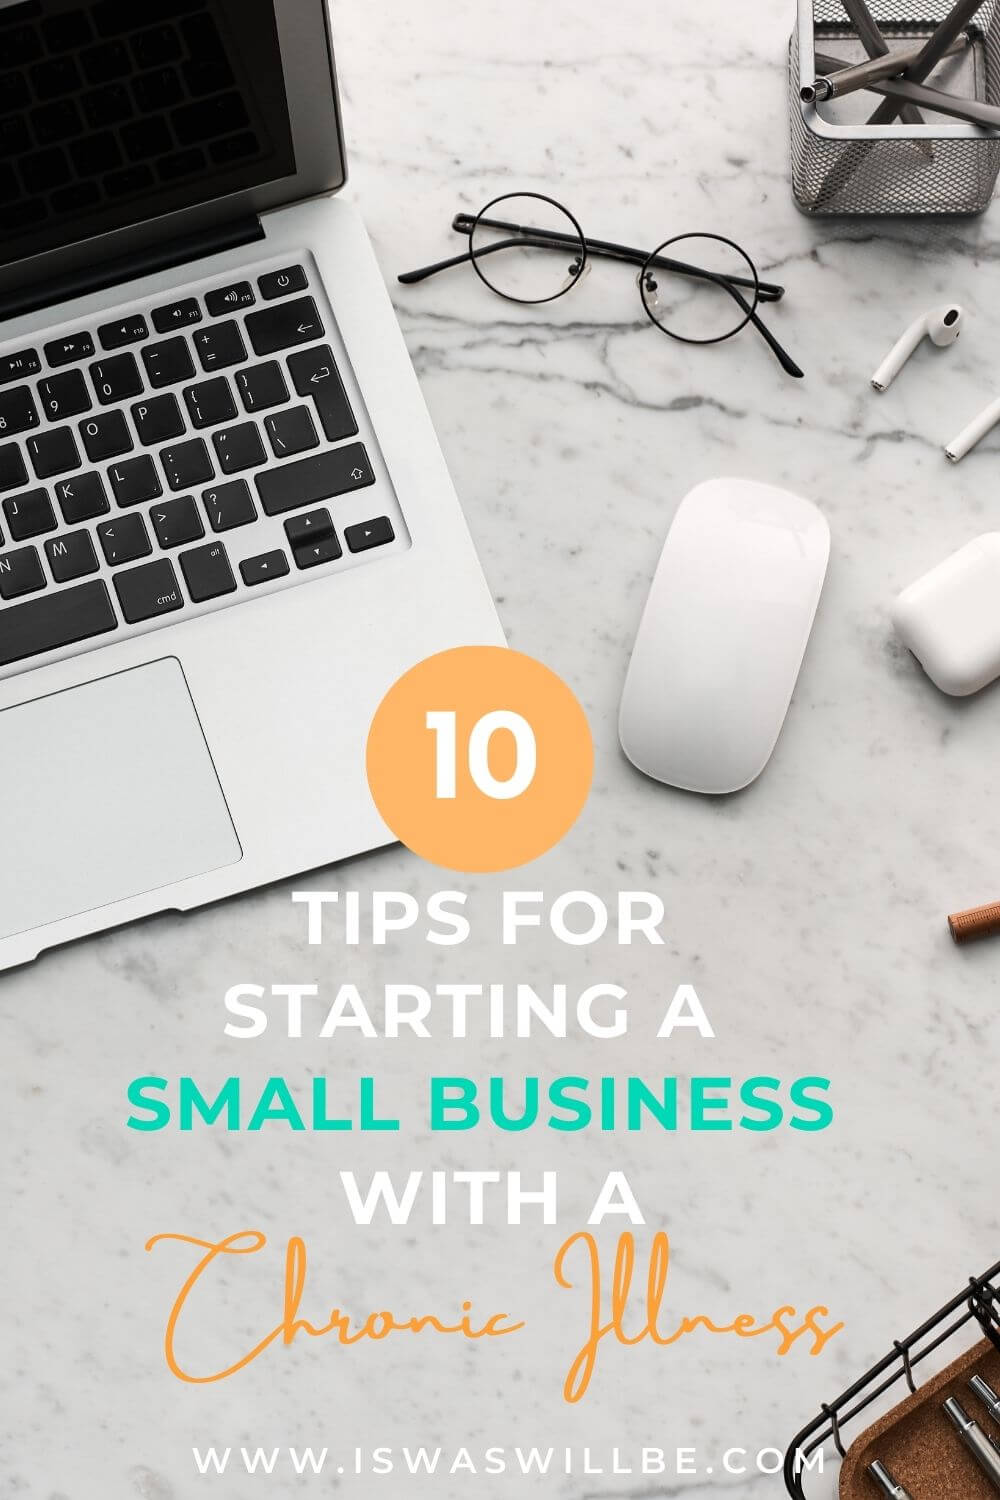 Tips for starting a small business with a chronic illness